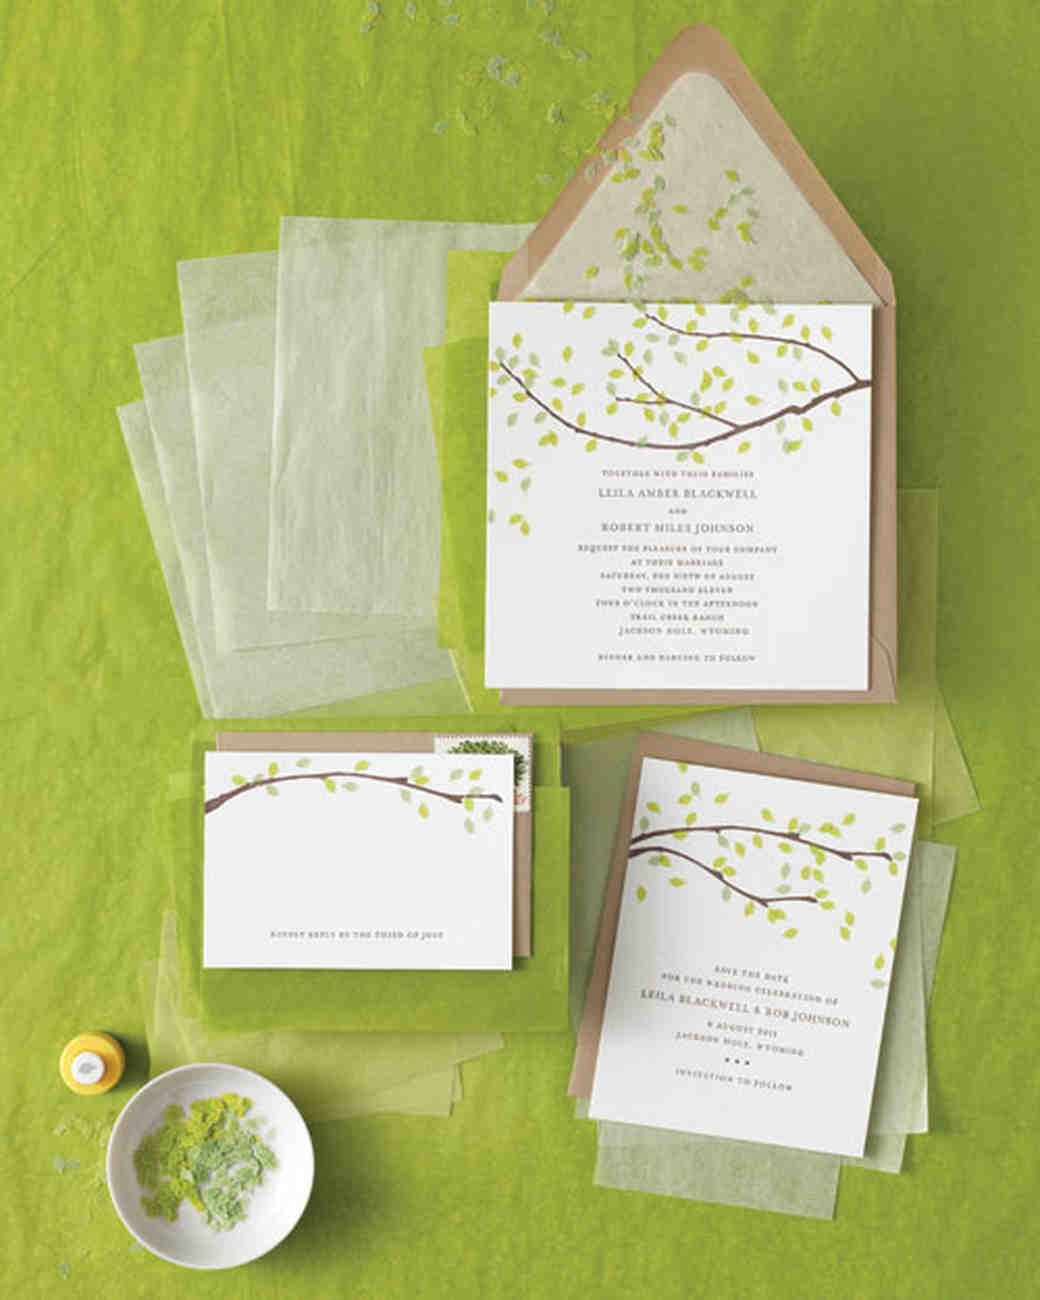 five ways to customize your wedding invitations | martha stewart, Wedding invitations